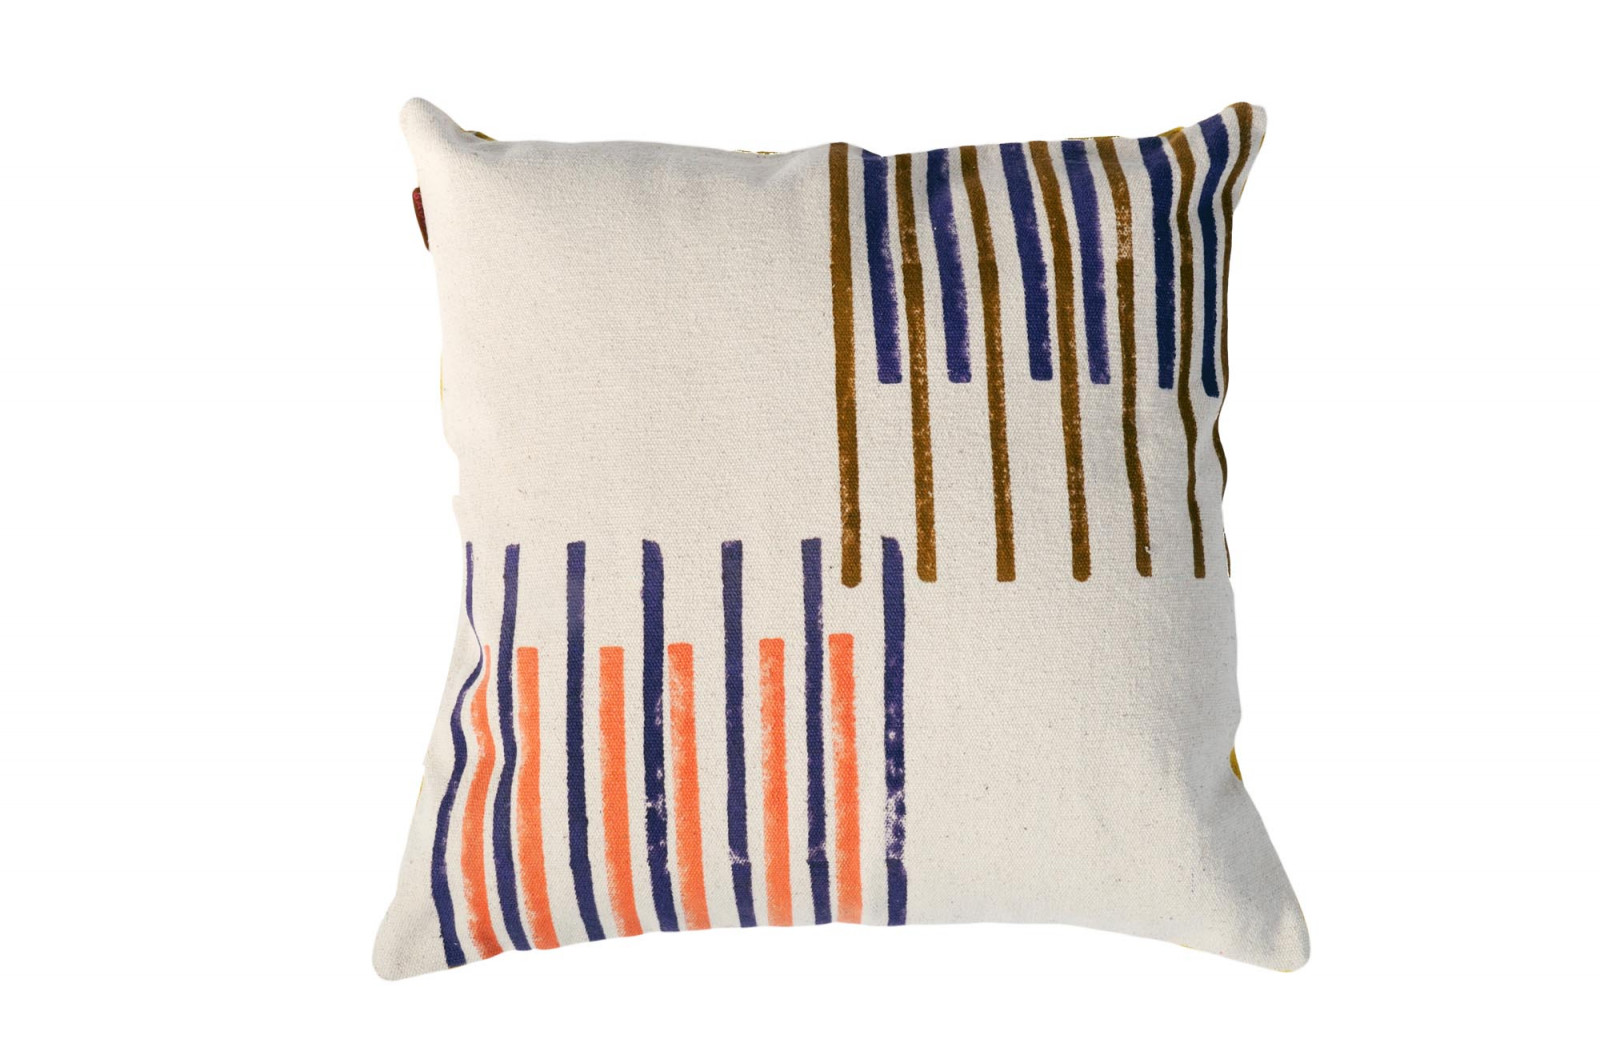 COUSSIN 50x50 CHANDIGARH / blue stripes